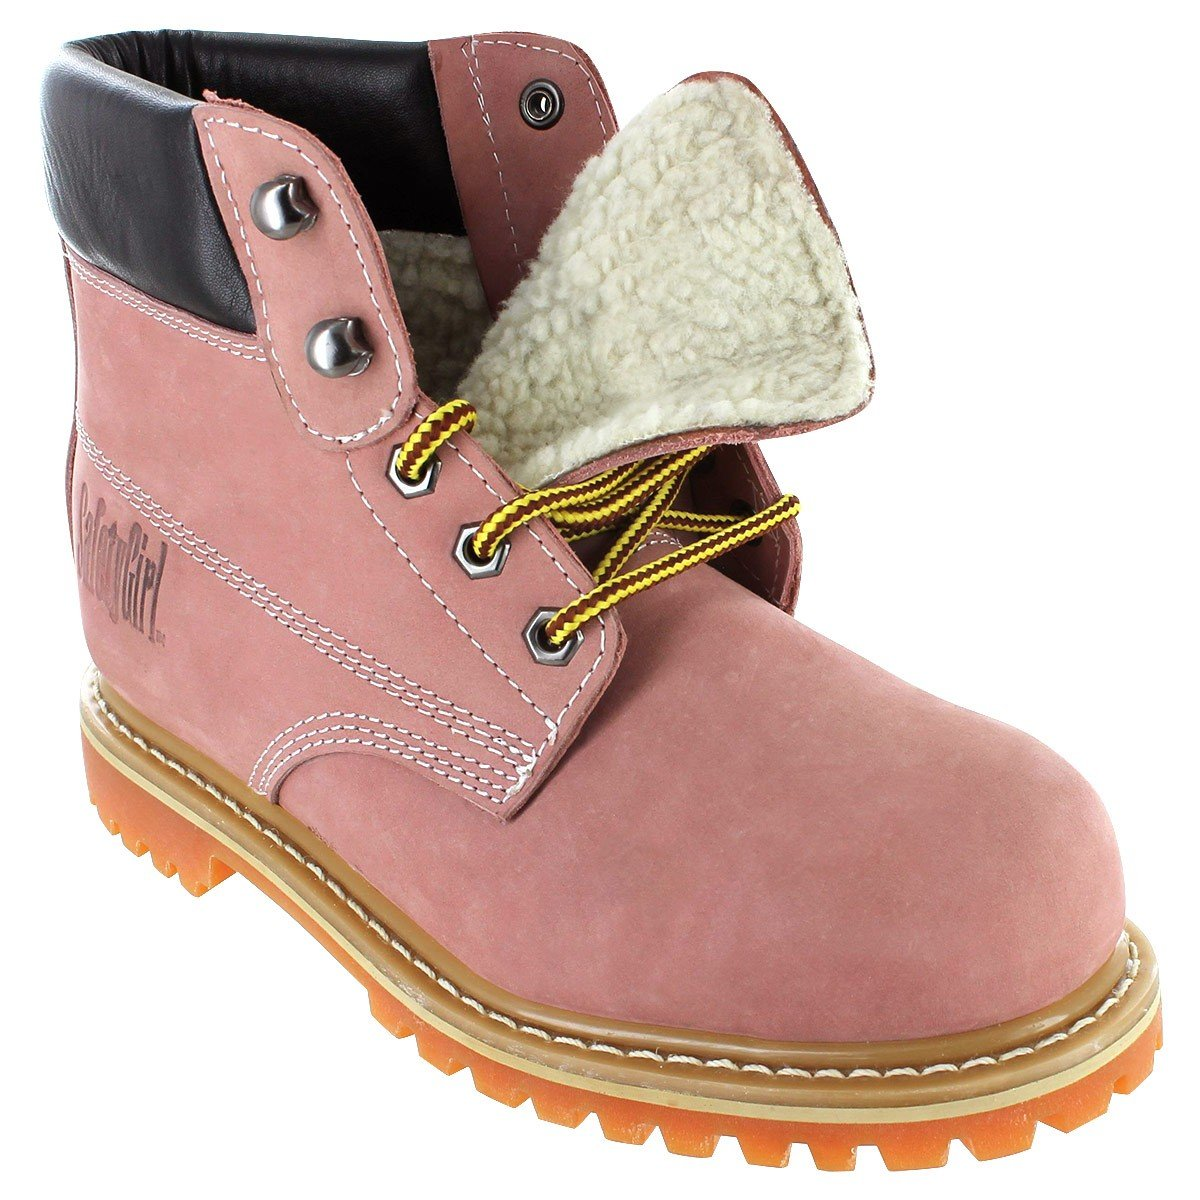 Safety Girl II Sheepskin Lined Work Boots - Light Pink